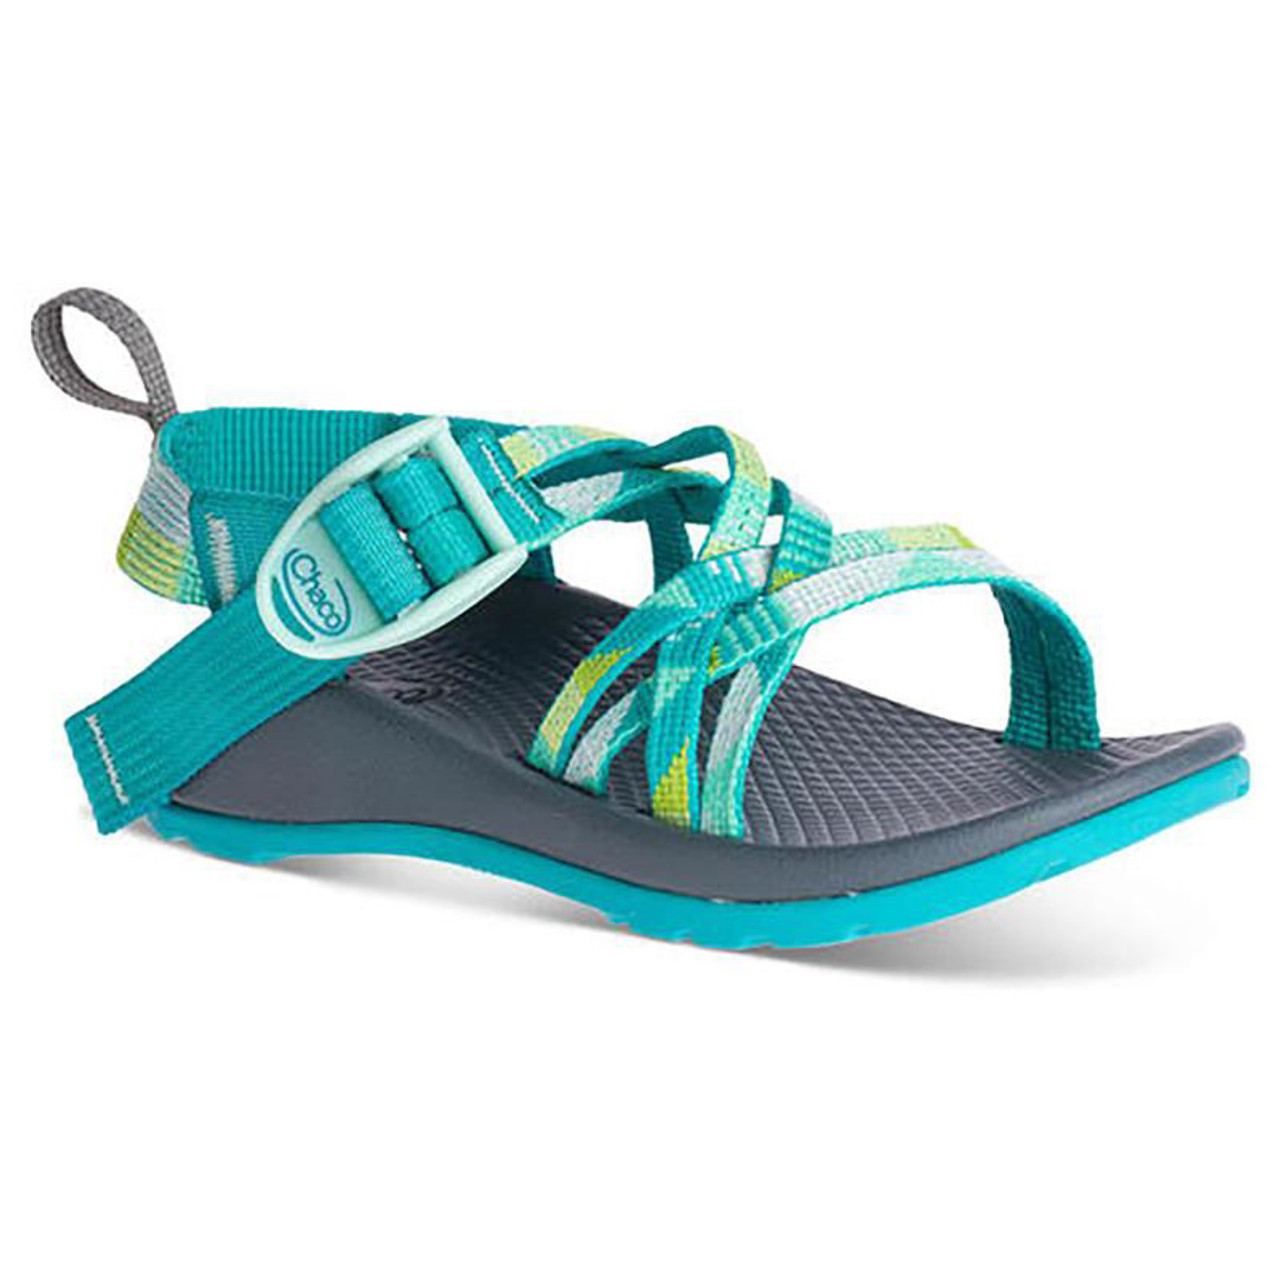 97c0a8b60518 Chaco Kid s Sandal - ZX 1 Kids - Puzzle Opal - Surf and Dirt